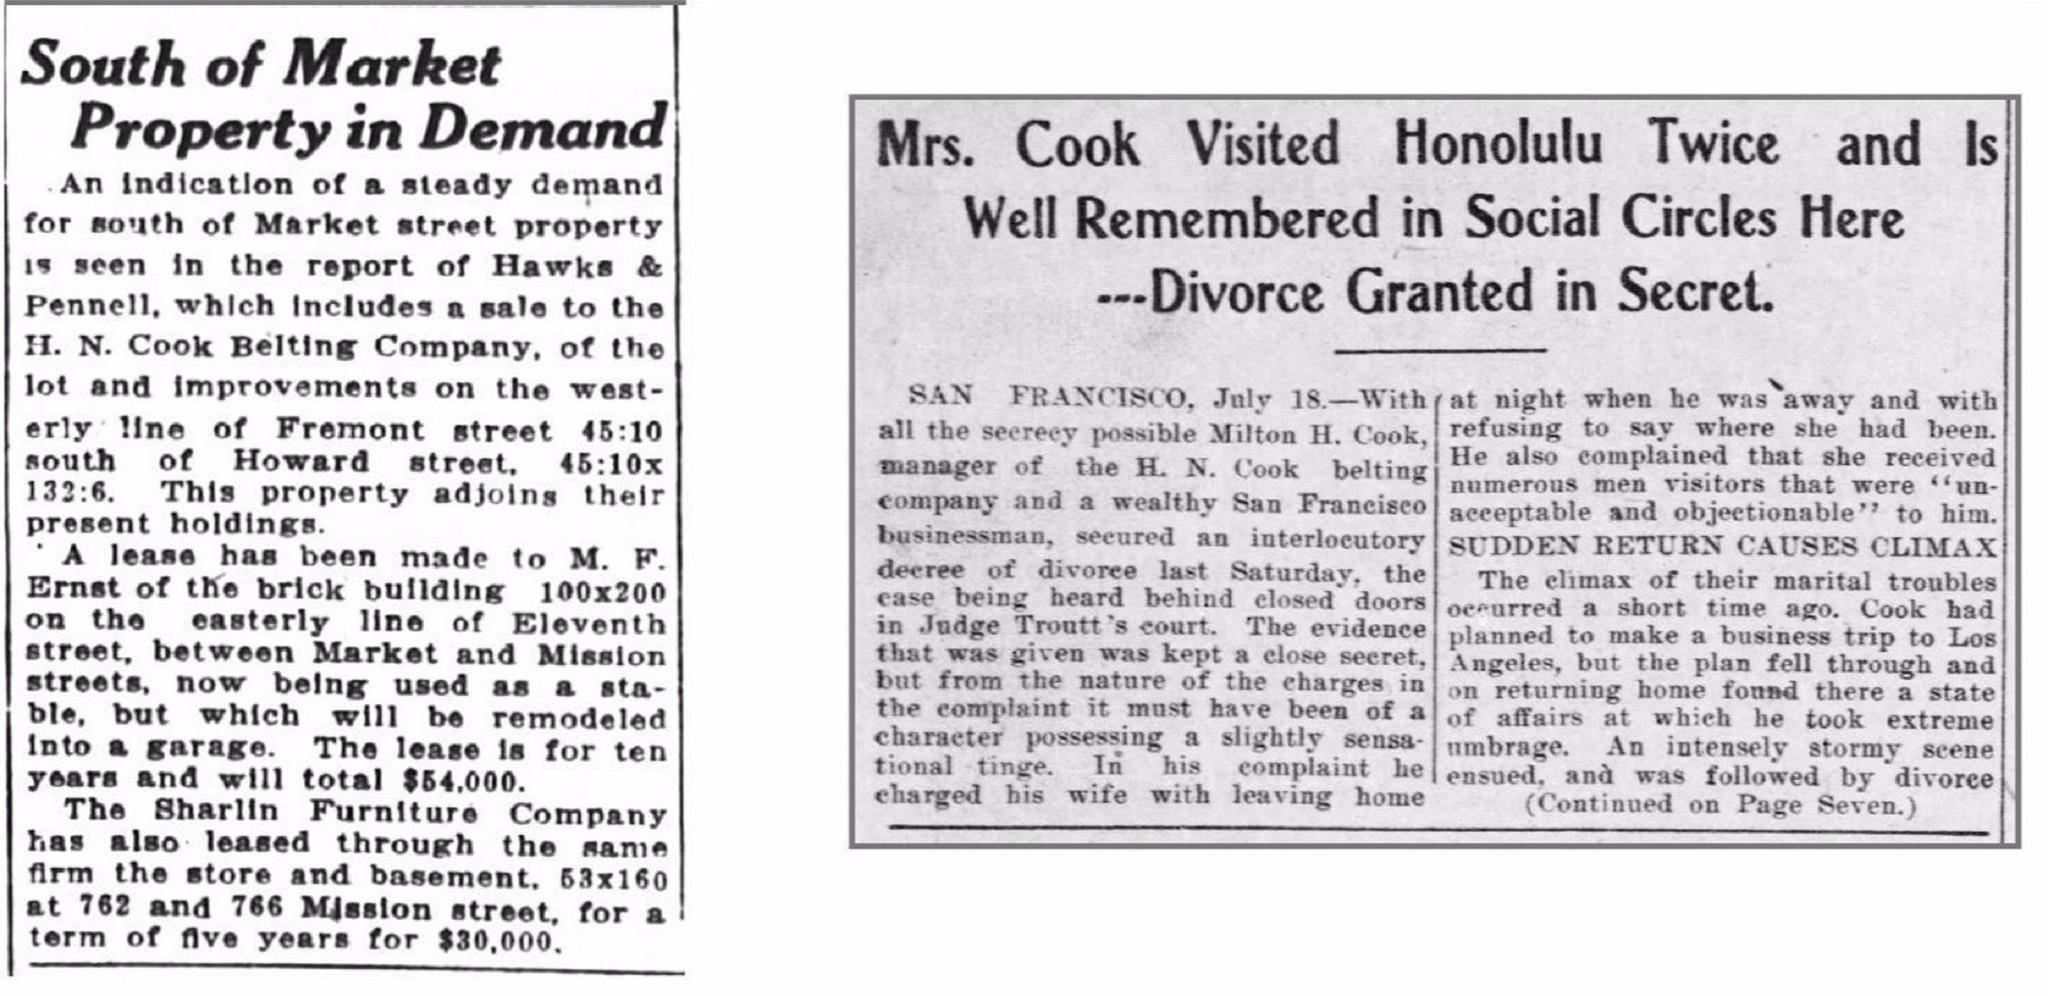 Reports detail news about the Cook family in the San Francisco Chronicle and Honolulu Advertiser in the late 19th and early 20th centuries.